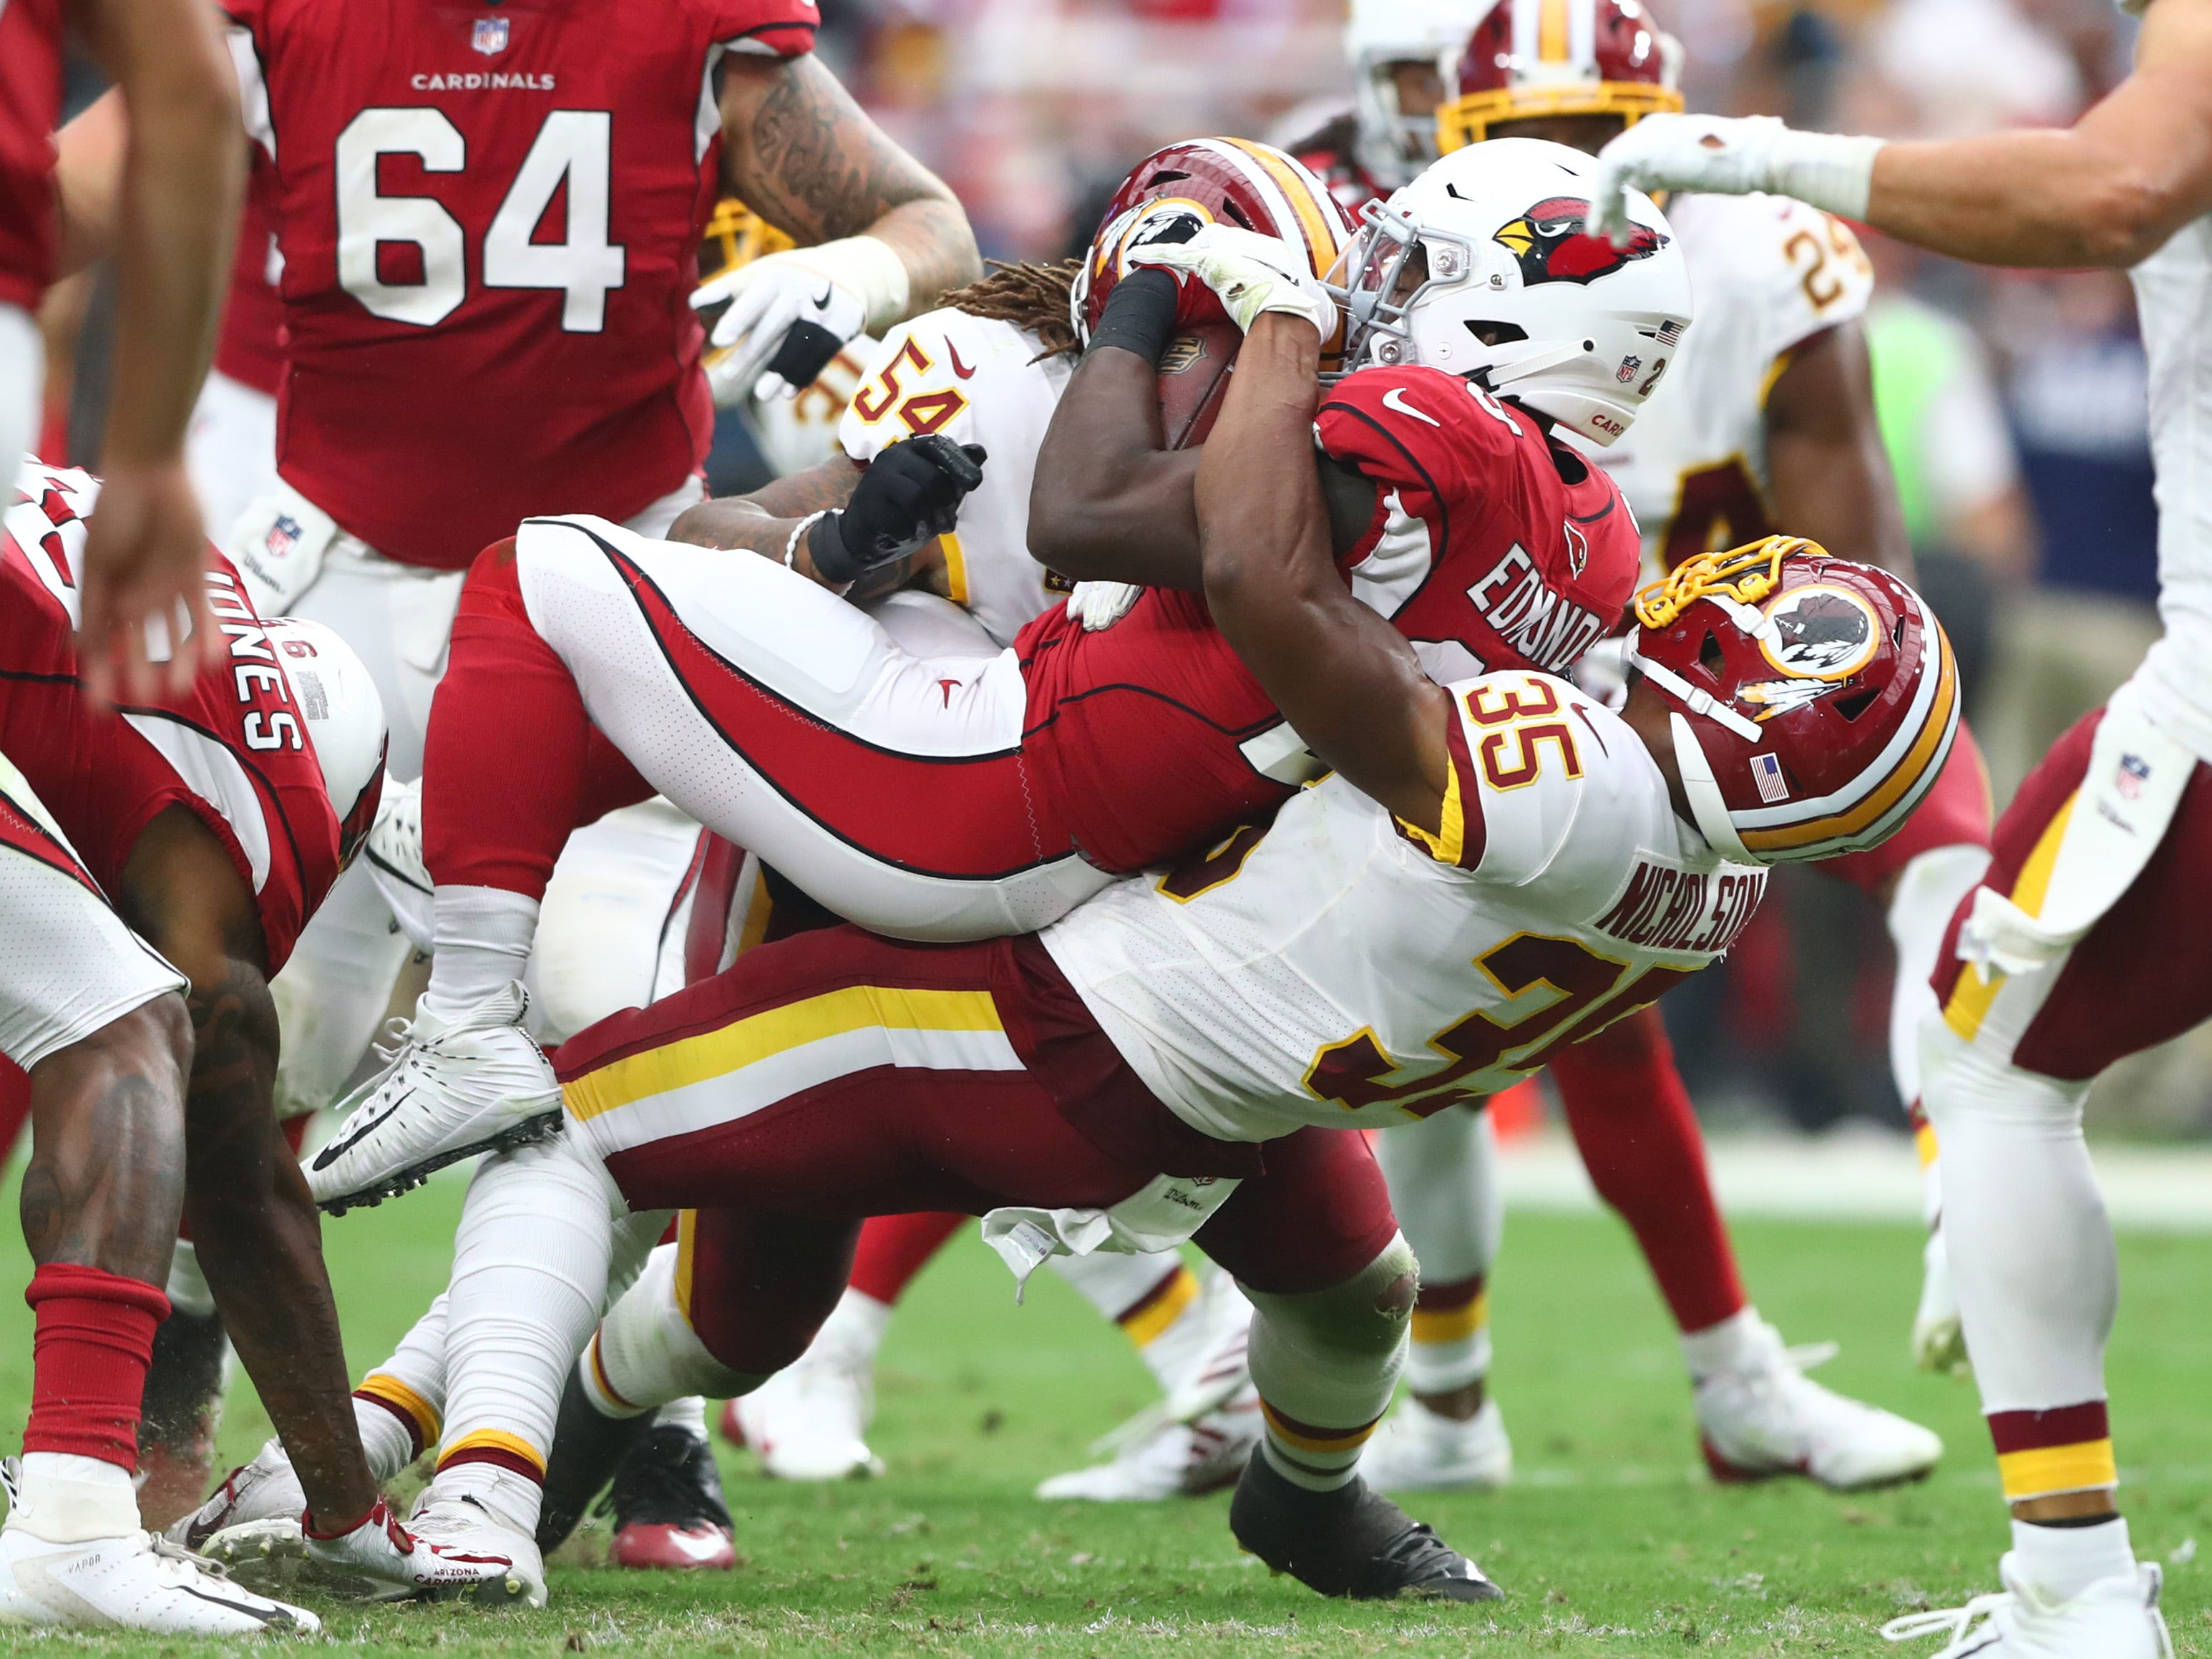 28. Cardinals (18): Preseason feeling like fool's gold as Arizona lost turnover battle and surrendered 429 yards (more than double what offense generated).